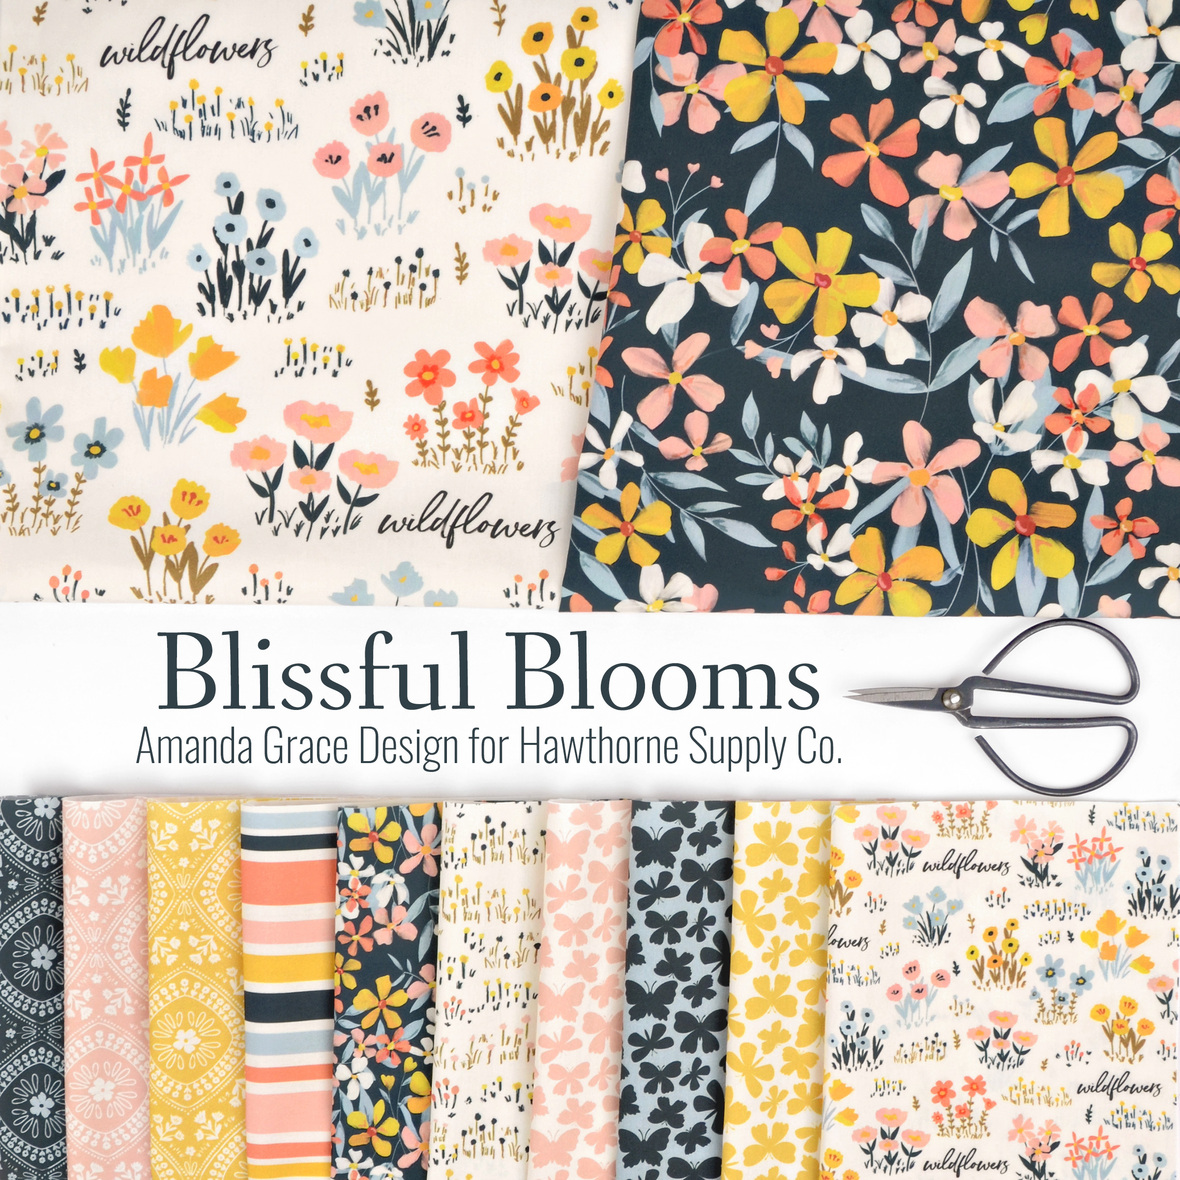 Blissful-Blooms-Fabric-Amanda-Grade-Design-for-Hawthorne-Supply-Co